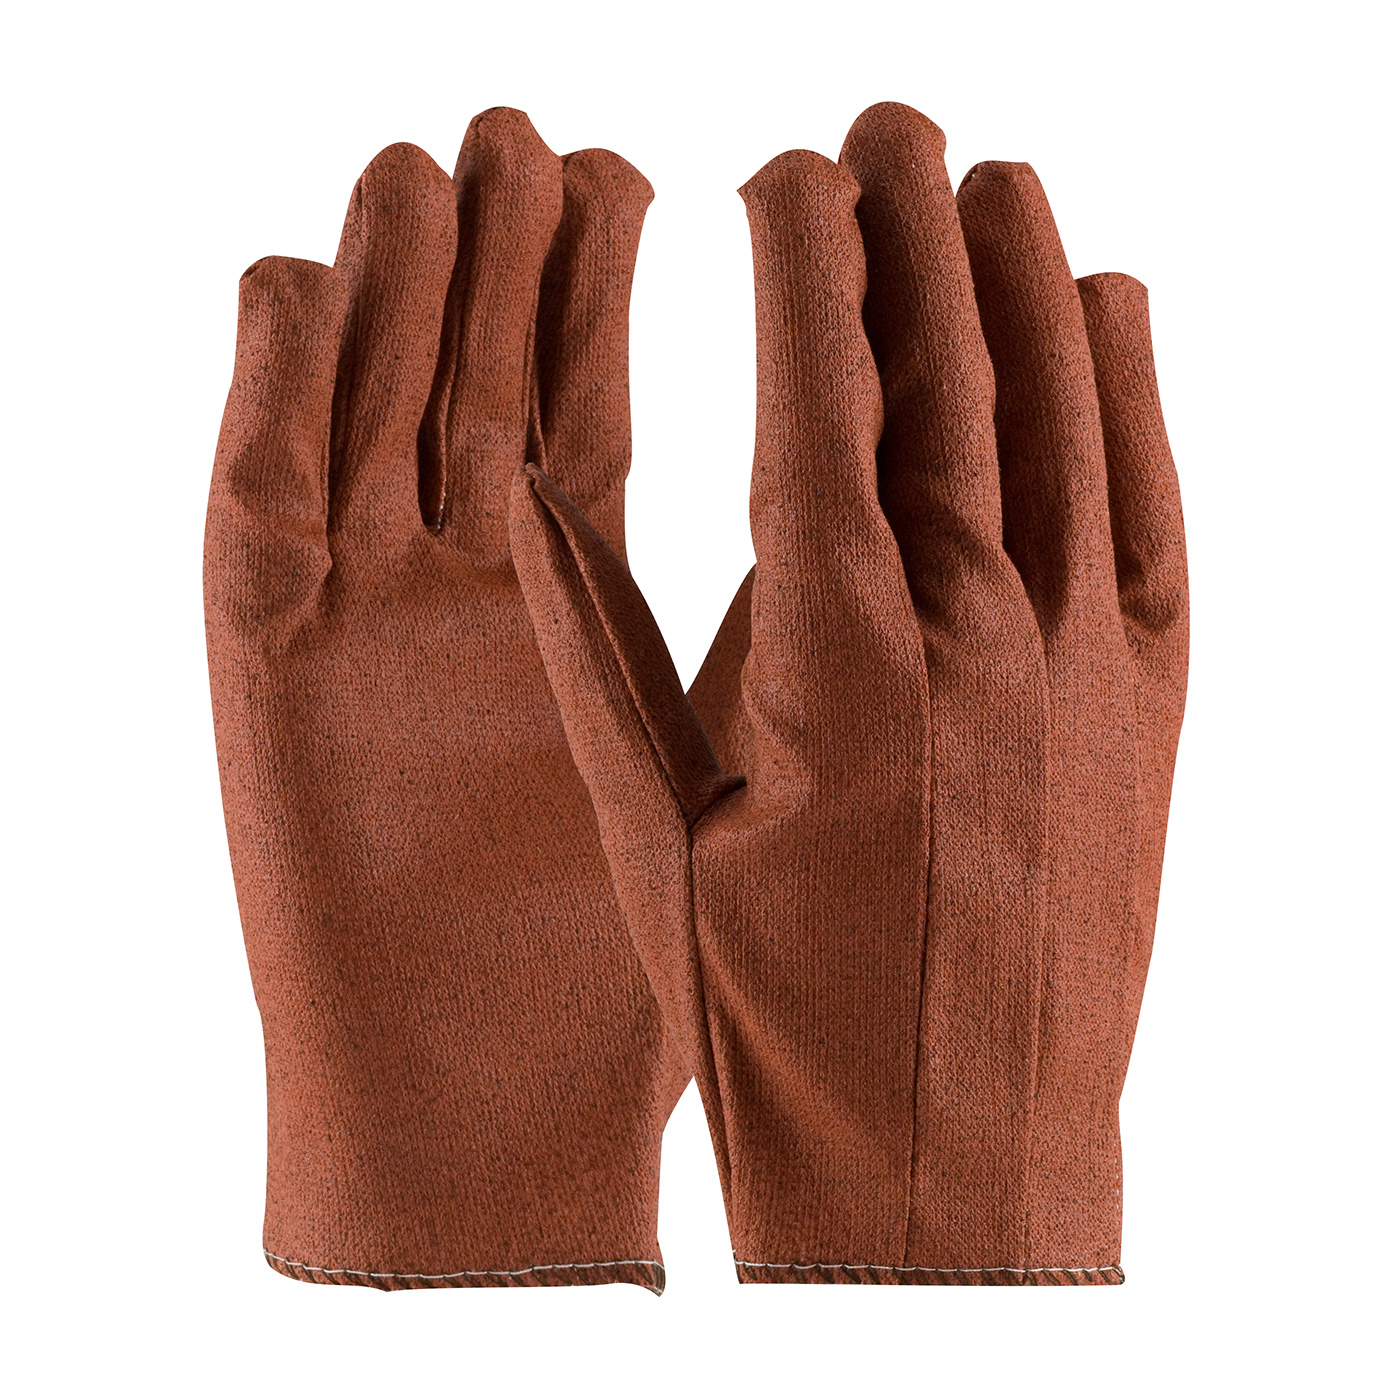 Coated Fabric Gloves